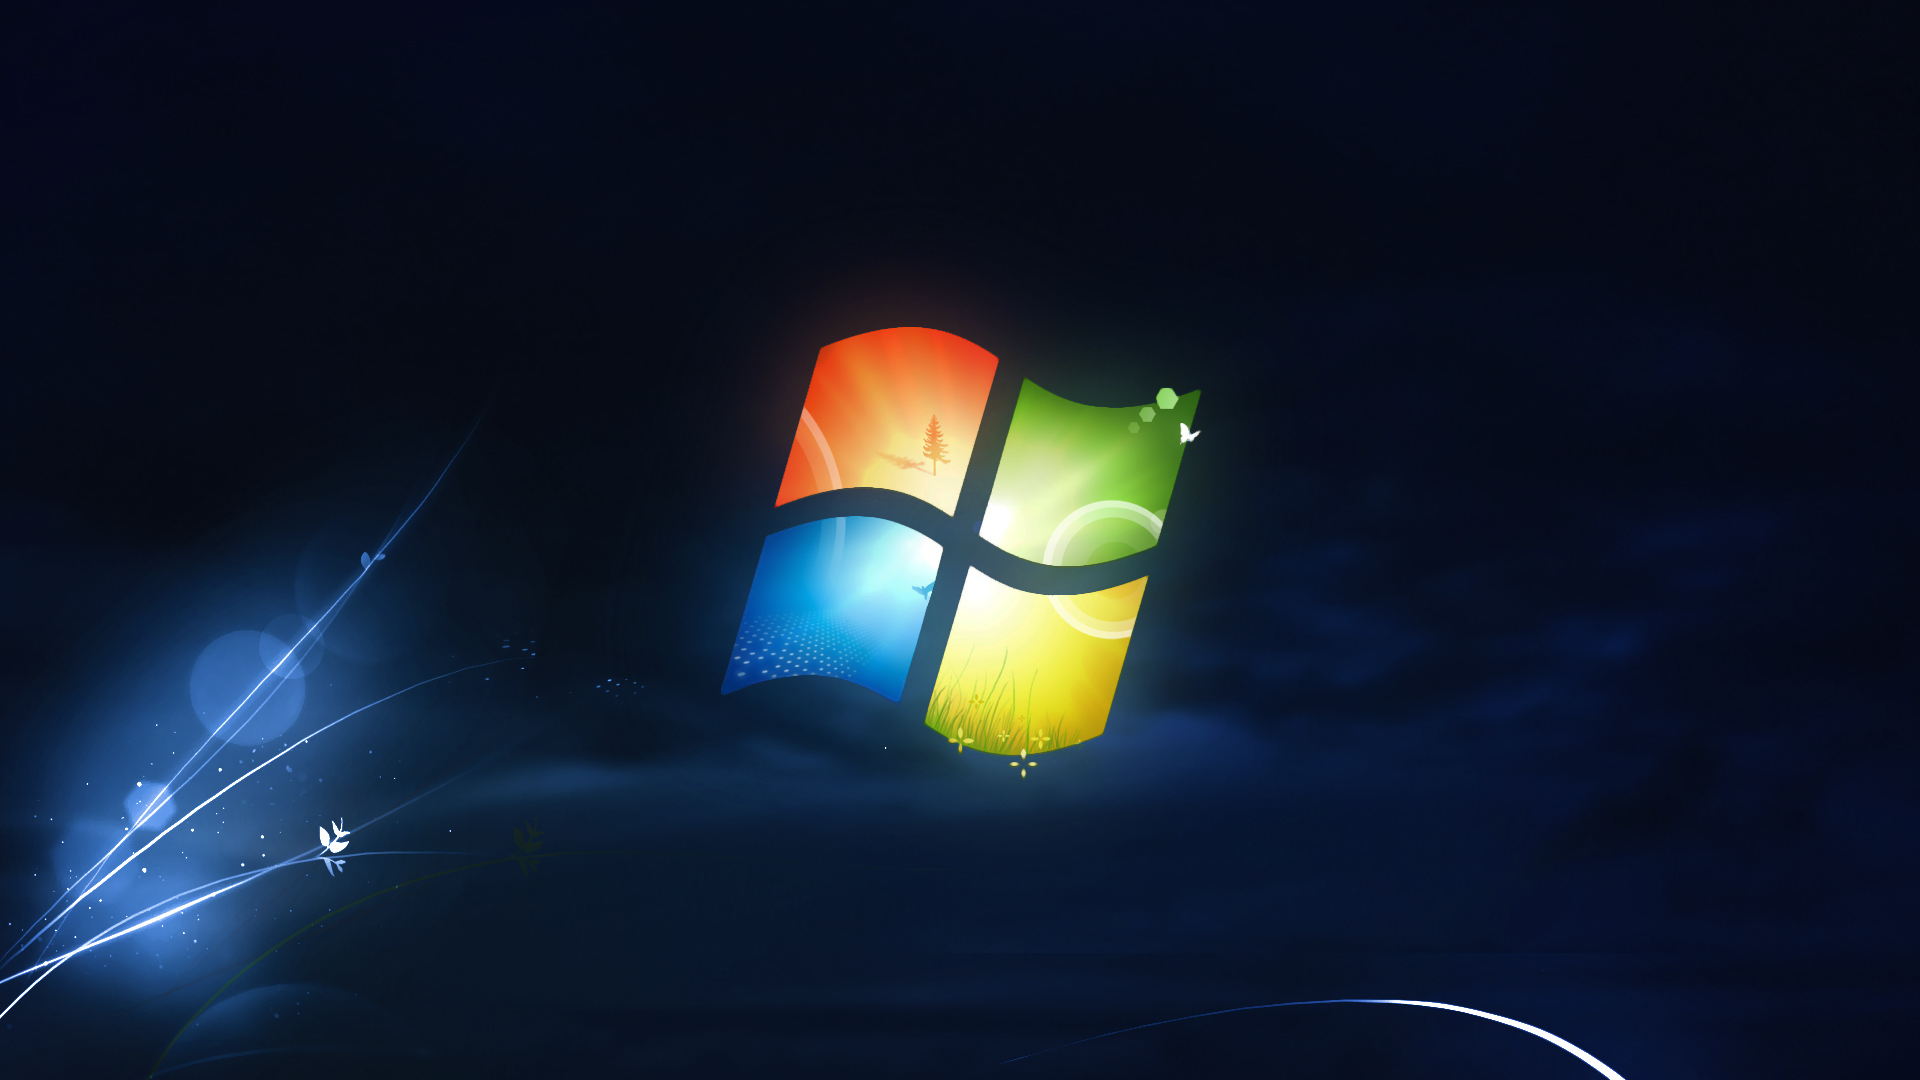 Wallpaper download microsoft - Microsoft Backgrounds Download Hd Wallpapers